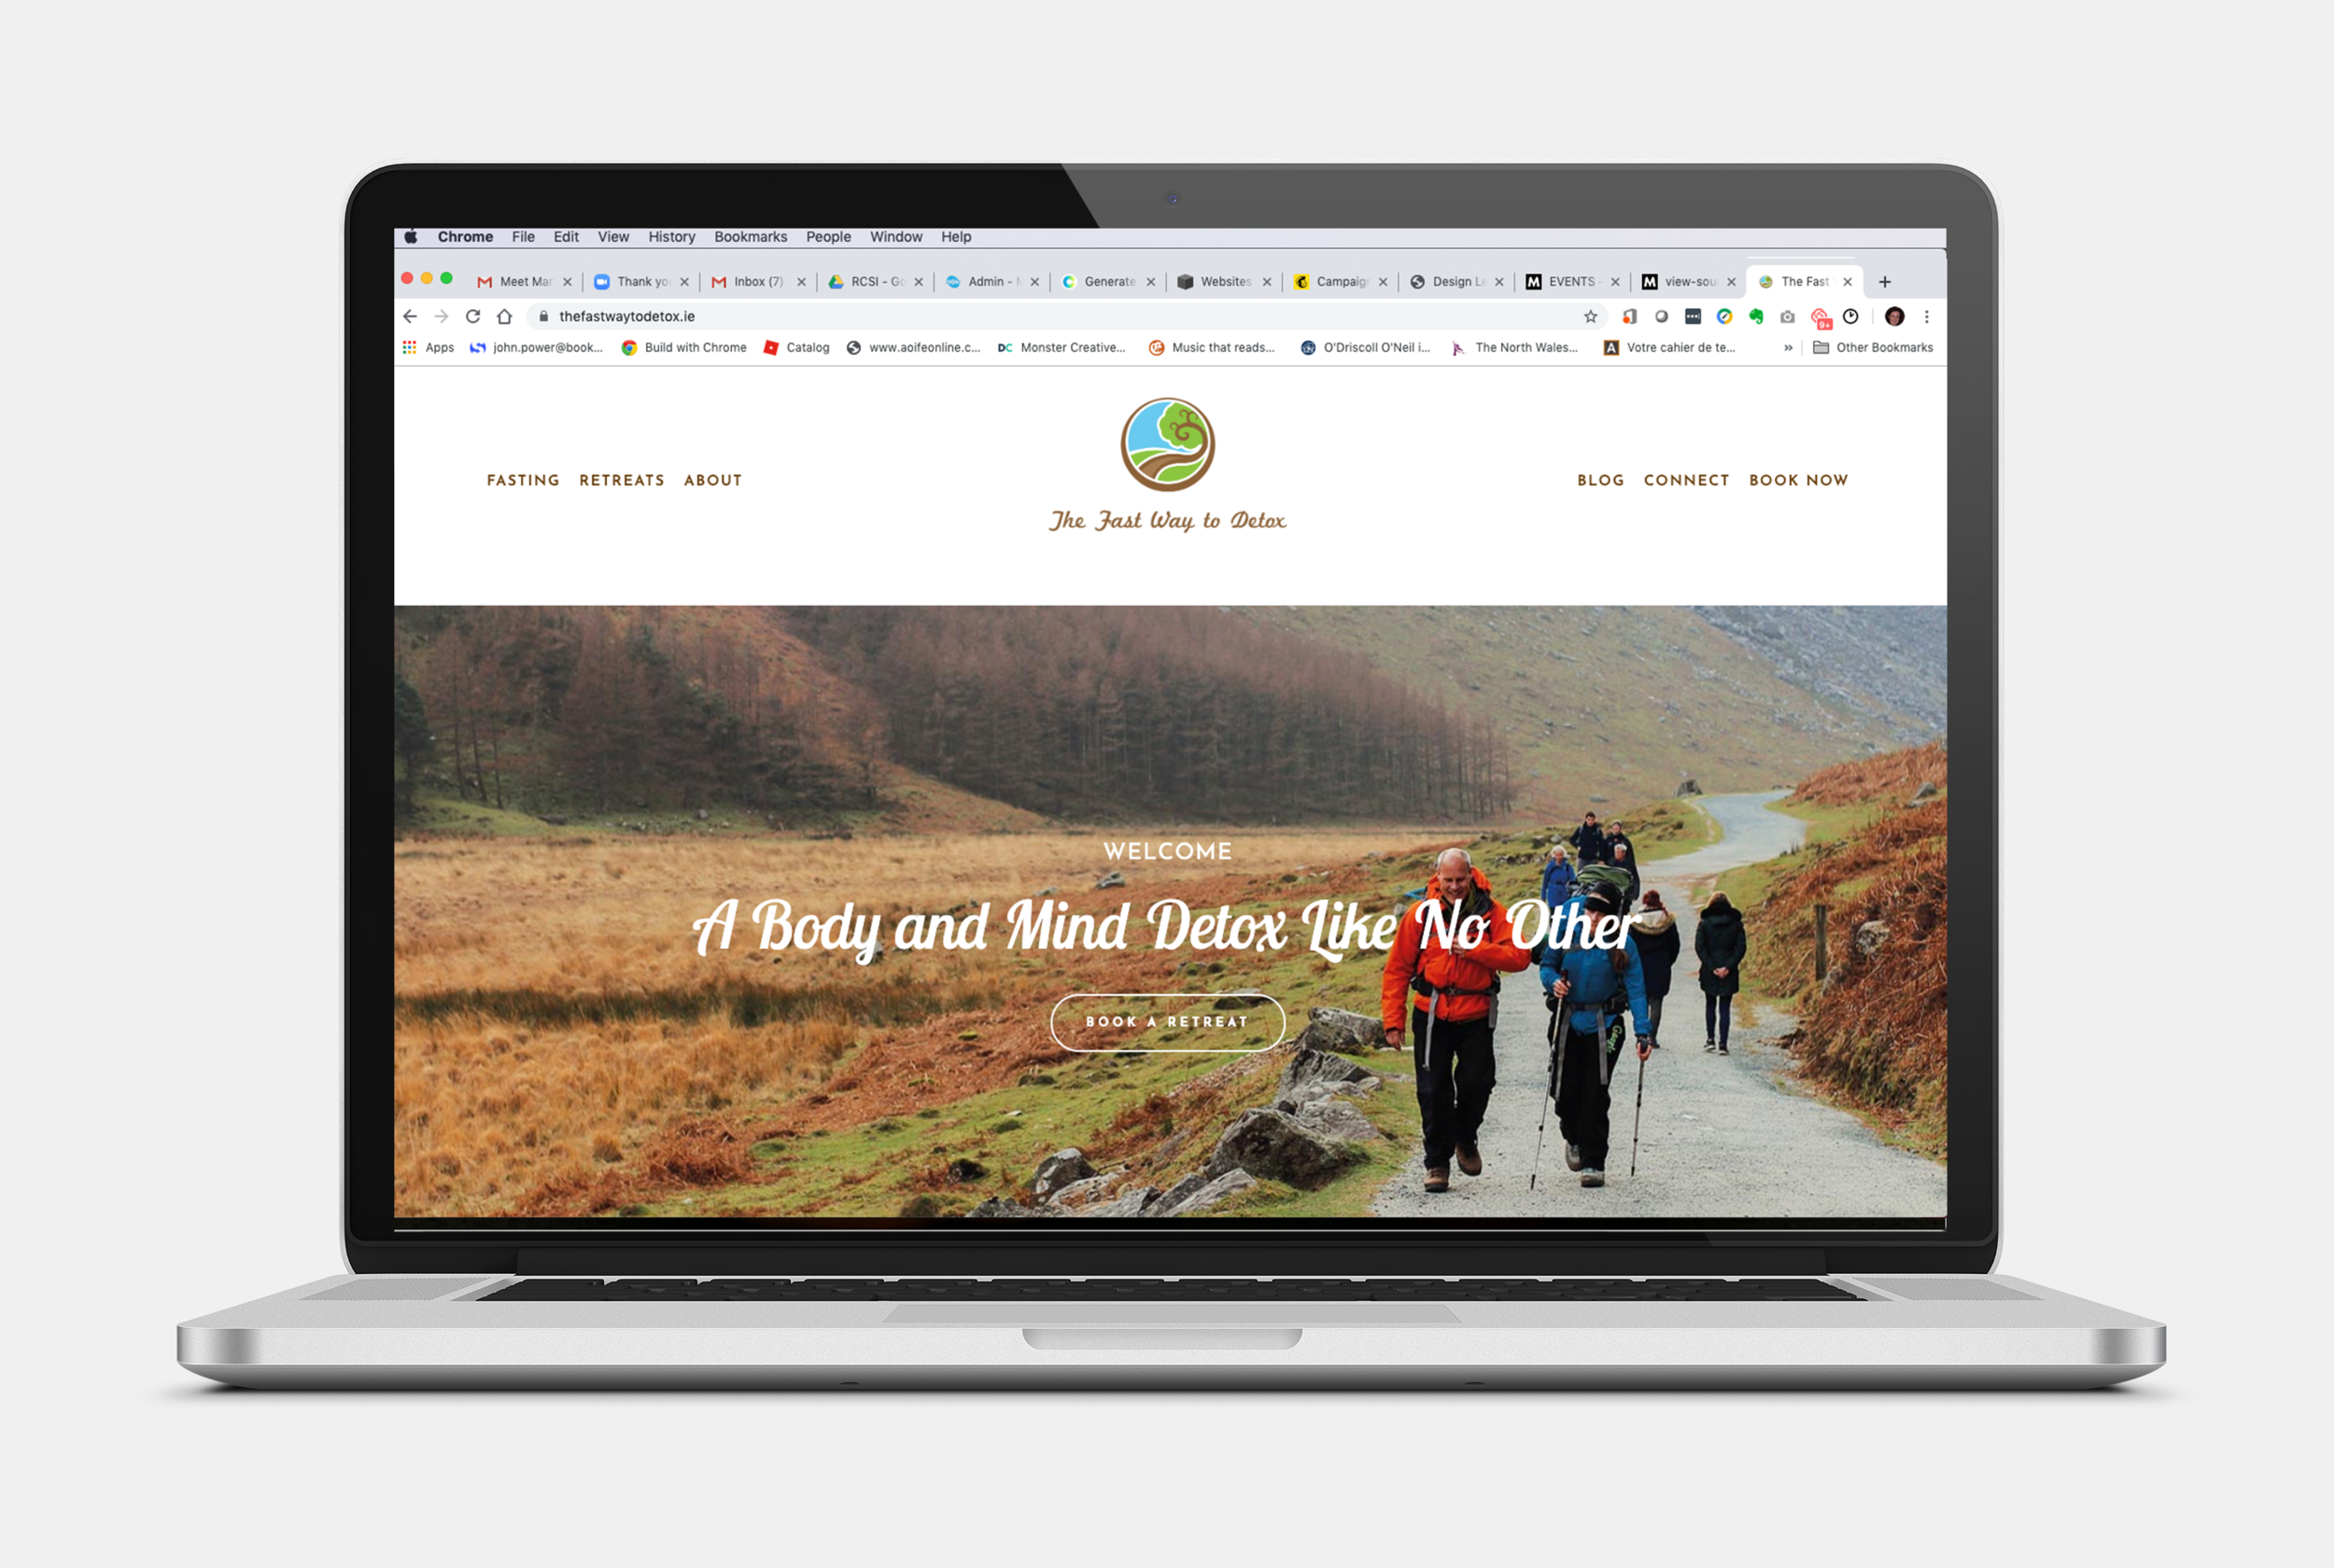 """The Fast Way to Detox - this started out as a site audit for an existing site that my client had done herself on Wix. We agreed to start again instead of trying to """"fix the Wix"""" and the result uses good copy and beautiful images to successfully sell Corinne's Fasting Retreats in Ireland."""